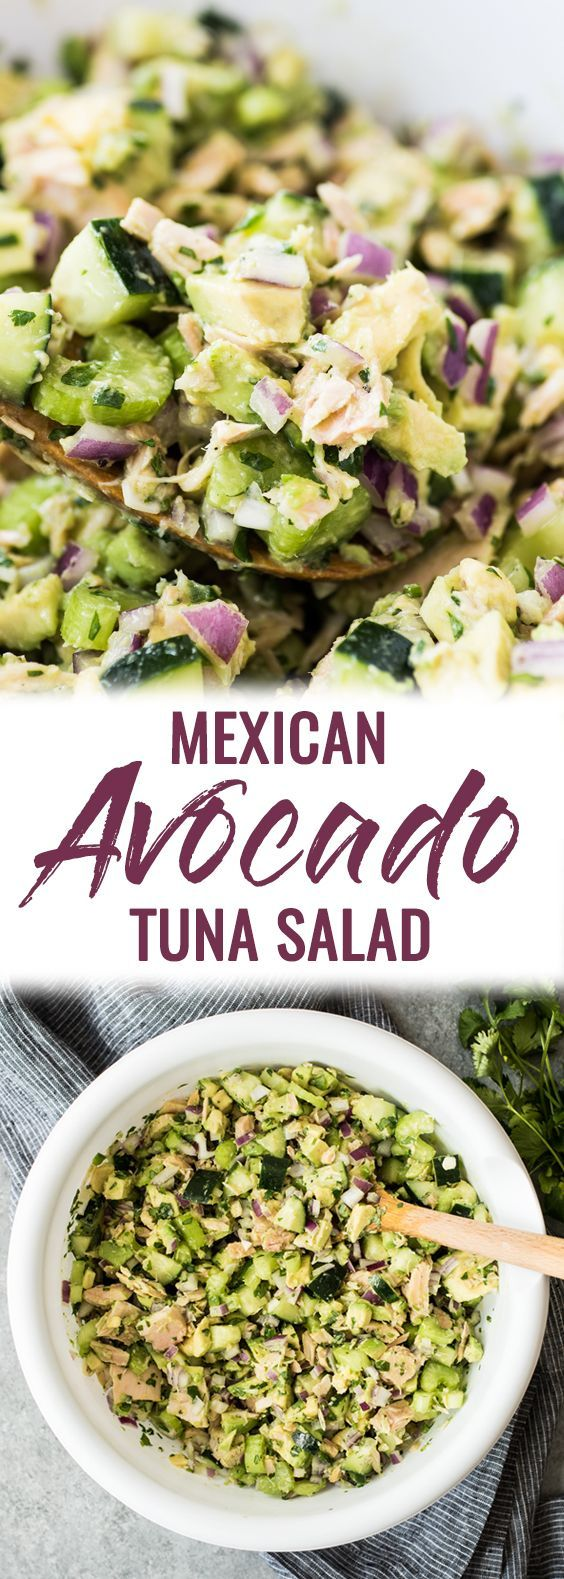 This Avocado Tuna Salad combines healthy fat from avocados and lean protein from tuna for a quick and easy mayo-free lunch or snack! It's also gluten free, low carb and paleo. Ready in only 10 minutes! #tunasalad #avocadosalad #lunch #lowcarb